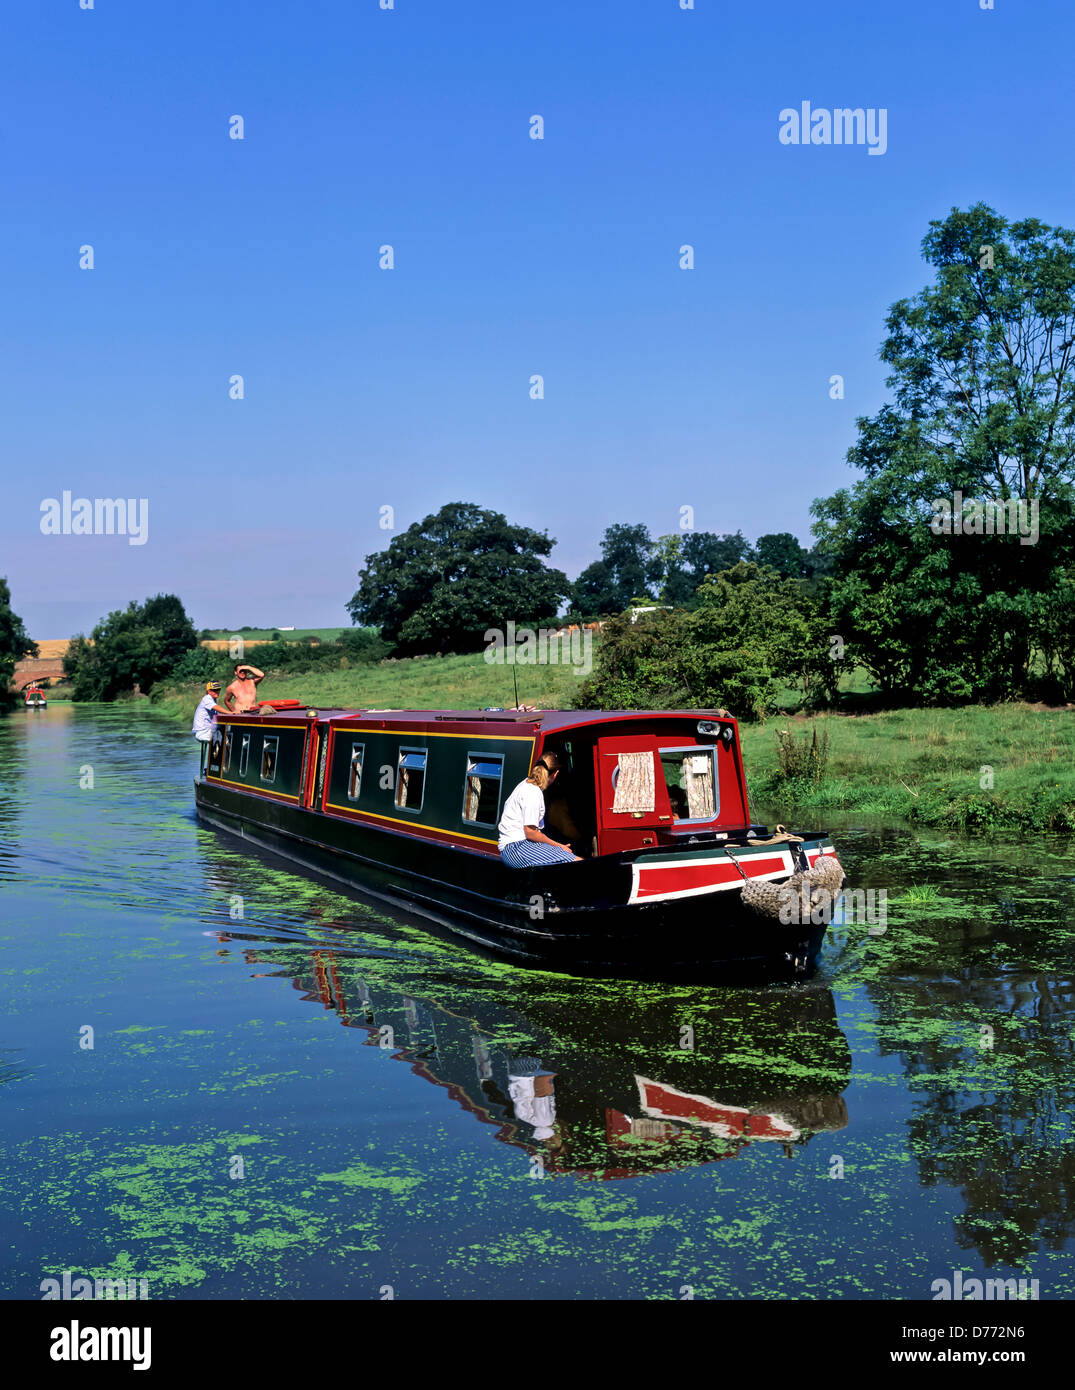 8683. Narrow boat on the Oxford canal, Warwickshire, England, UK, Europe - Stock Image